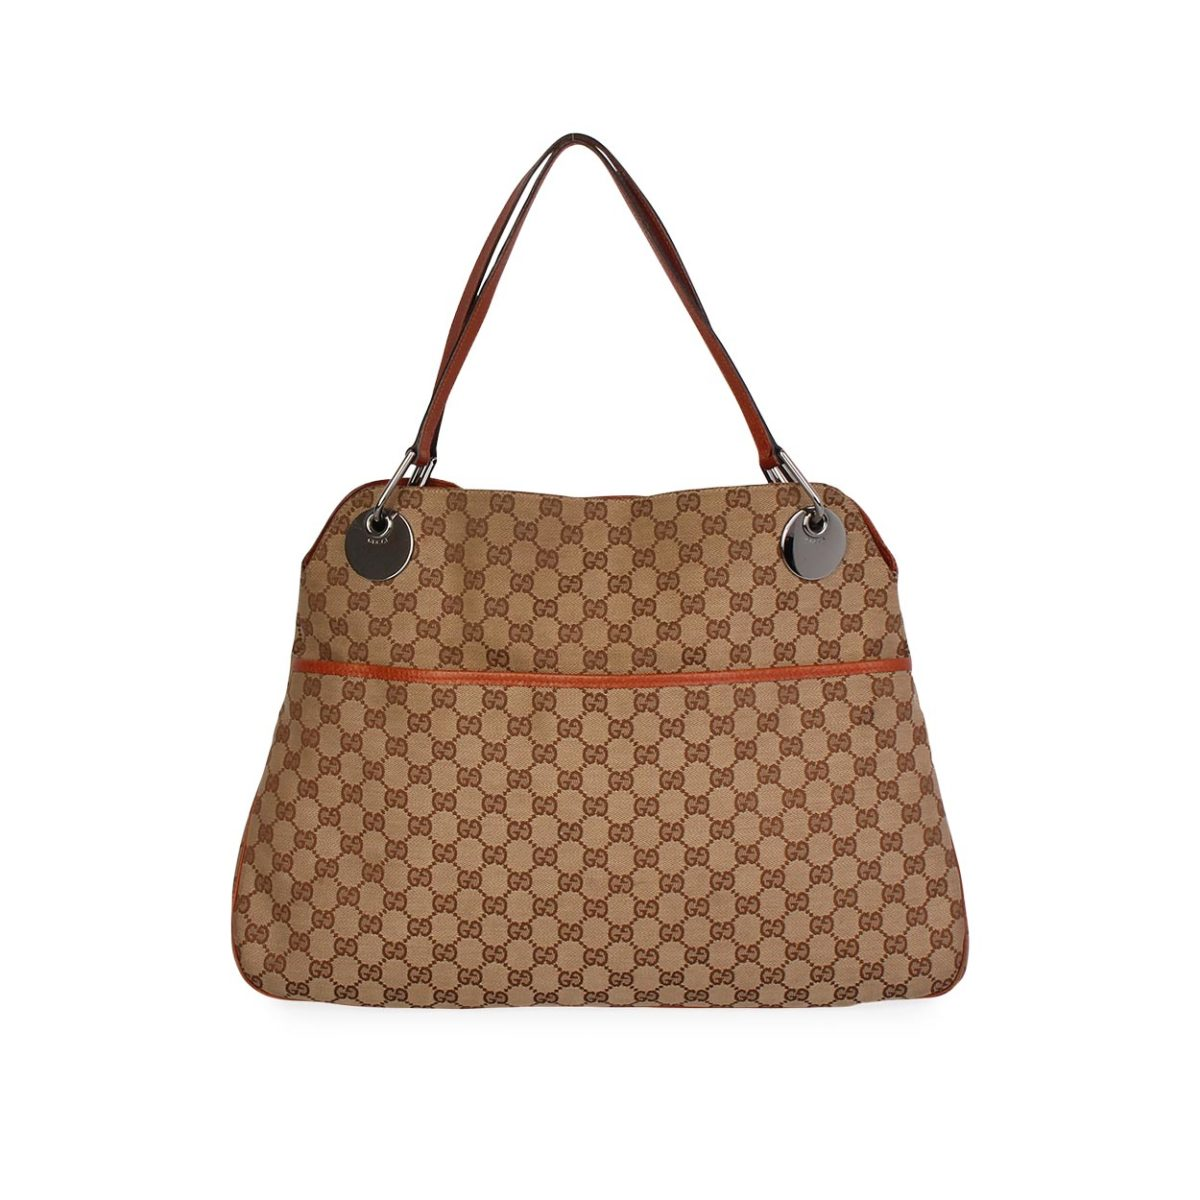 47d98116eef GUCCI GG Eclipse Large Tote Brown